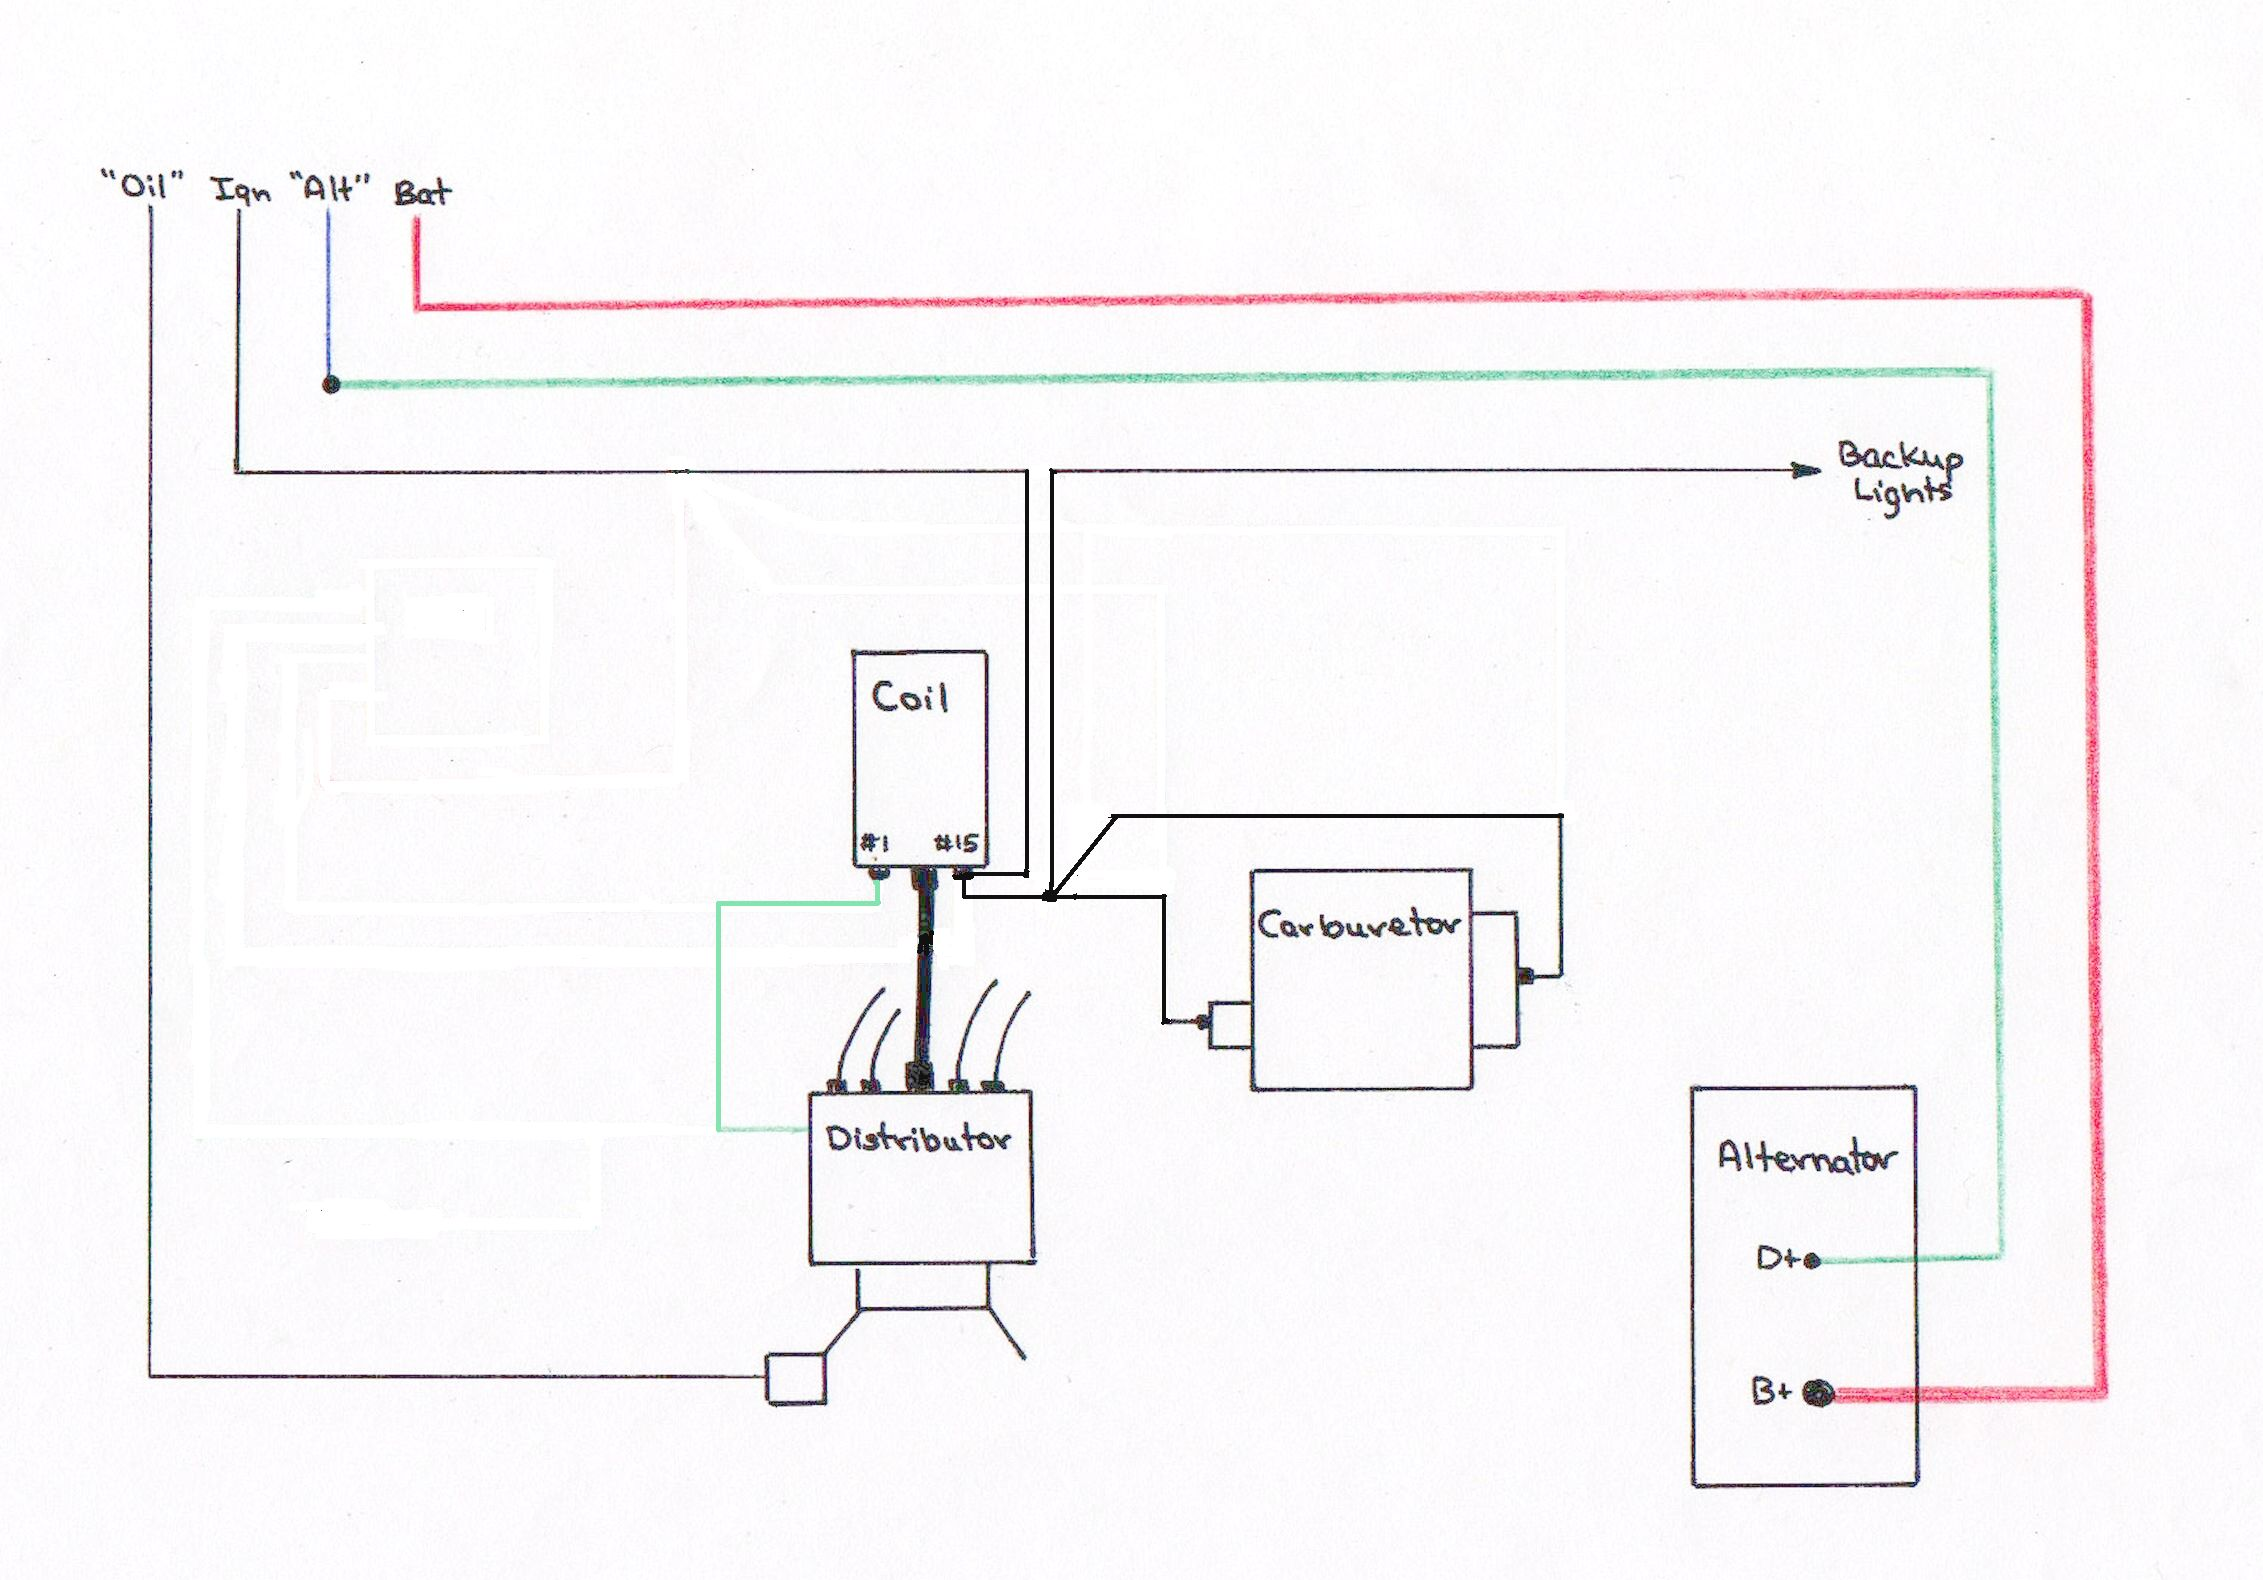 handdrawn_schematic alternator wiring compu fire ignition wiring diagram at soozxer.org